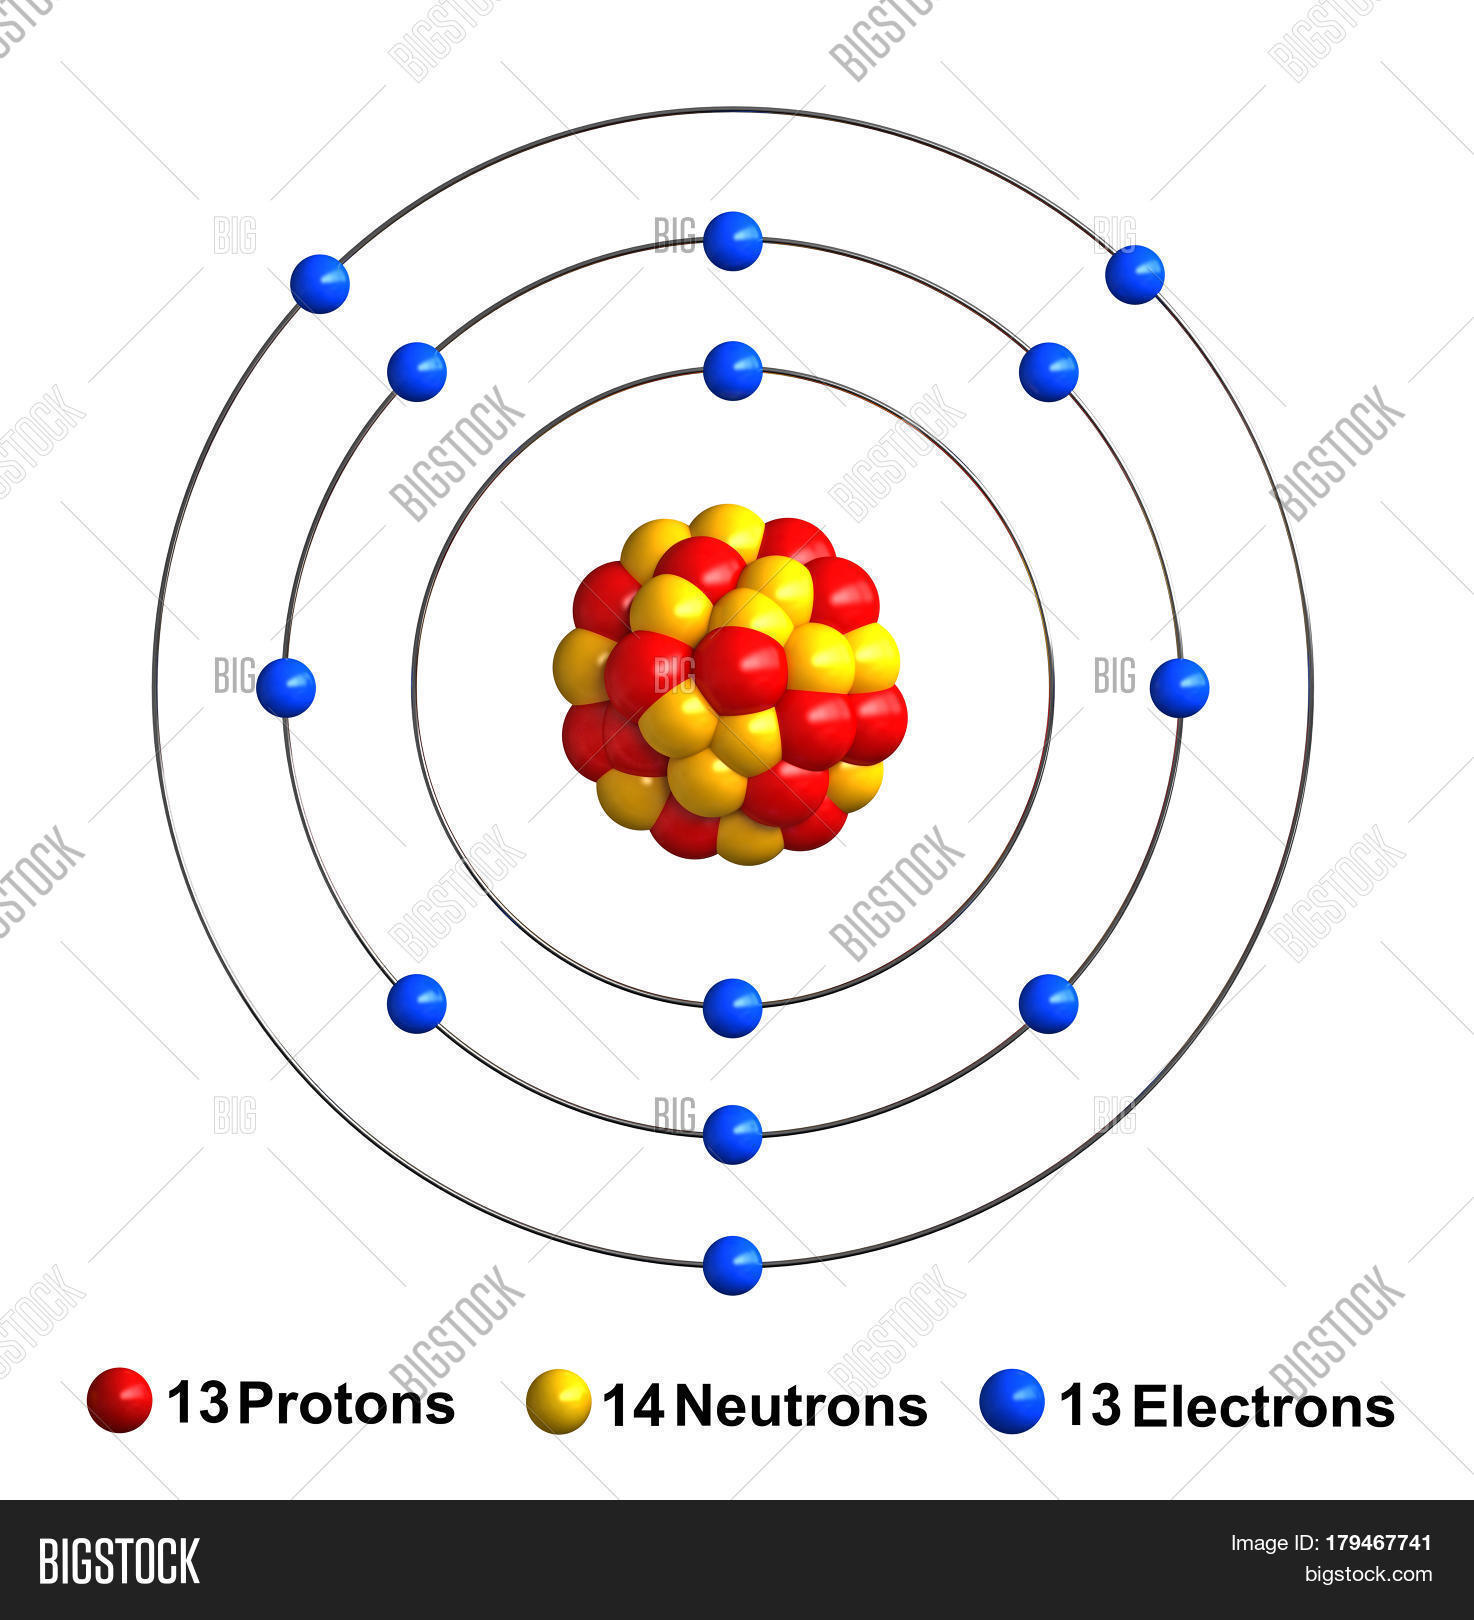 Diagram of an aluminum atom example electrical circuit 3d render atom image photo free trial bigstock rh bigstockphoto com draw a diagram of an aluminum atom shell model diagram for aluminum ccuart Images